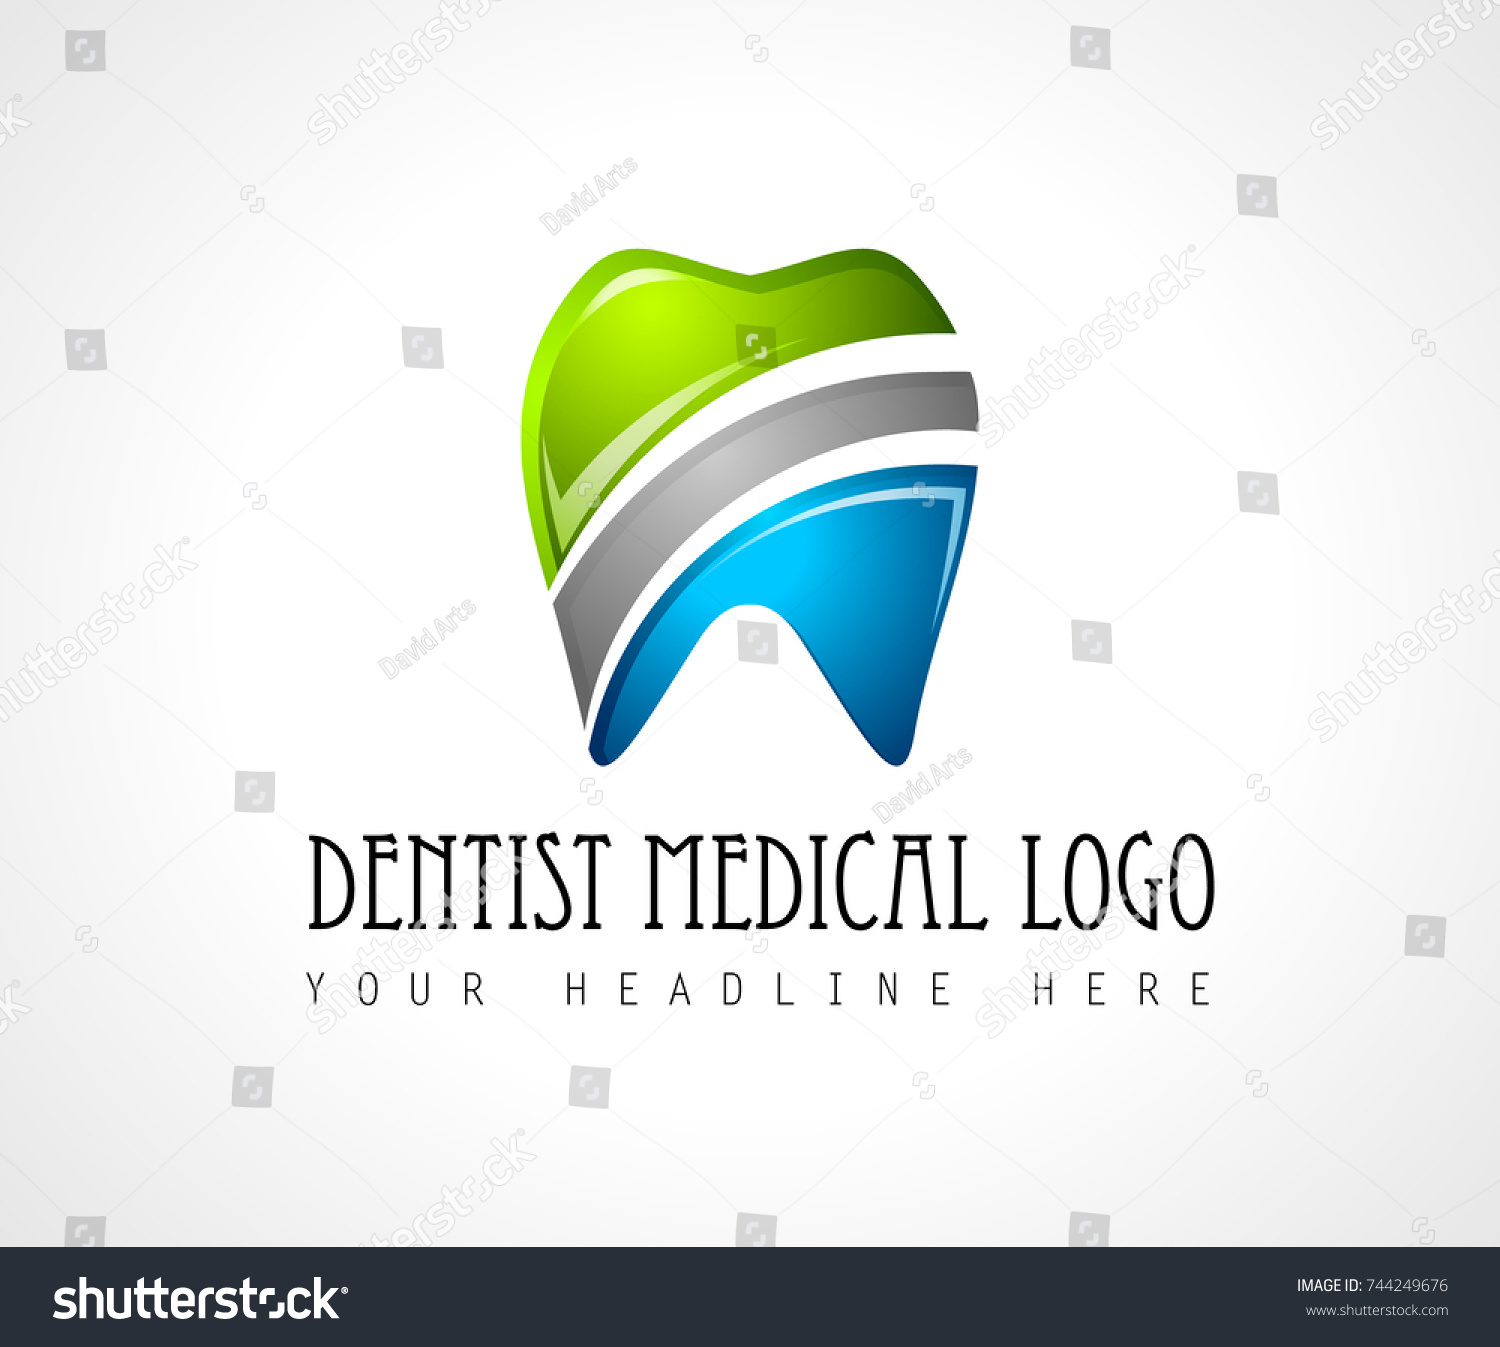 Dentist medical clinic logo design brand stock vector 744249676 dentist medical clinic logo design for brand identity company profile or corporate logos with clean biocorpaavc